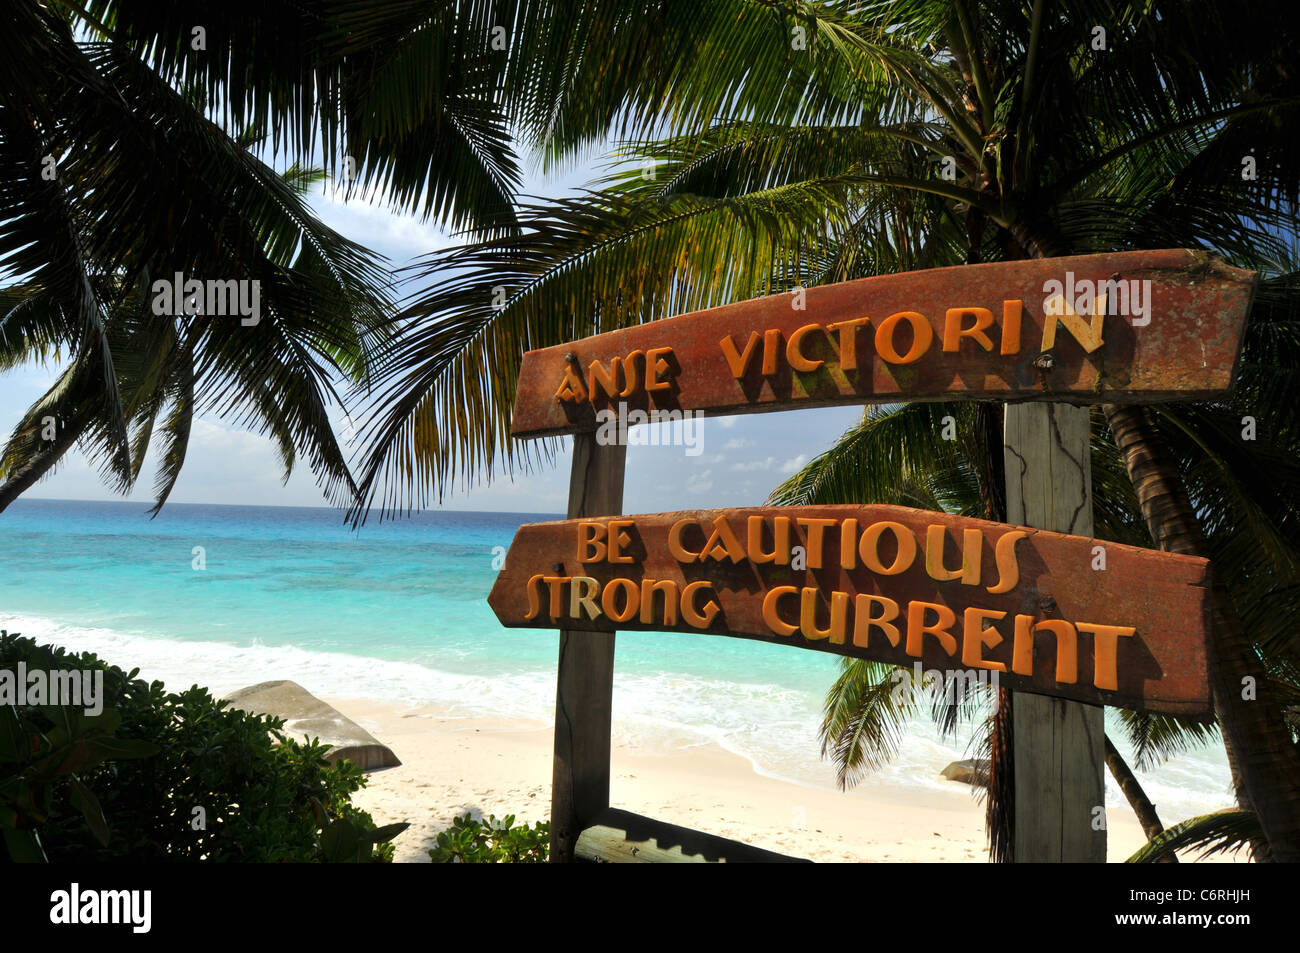 Anse Victorin Listed As One Of The Best Beaches In World Fregate Island Private A Holiday Resort Seychelles